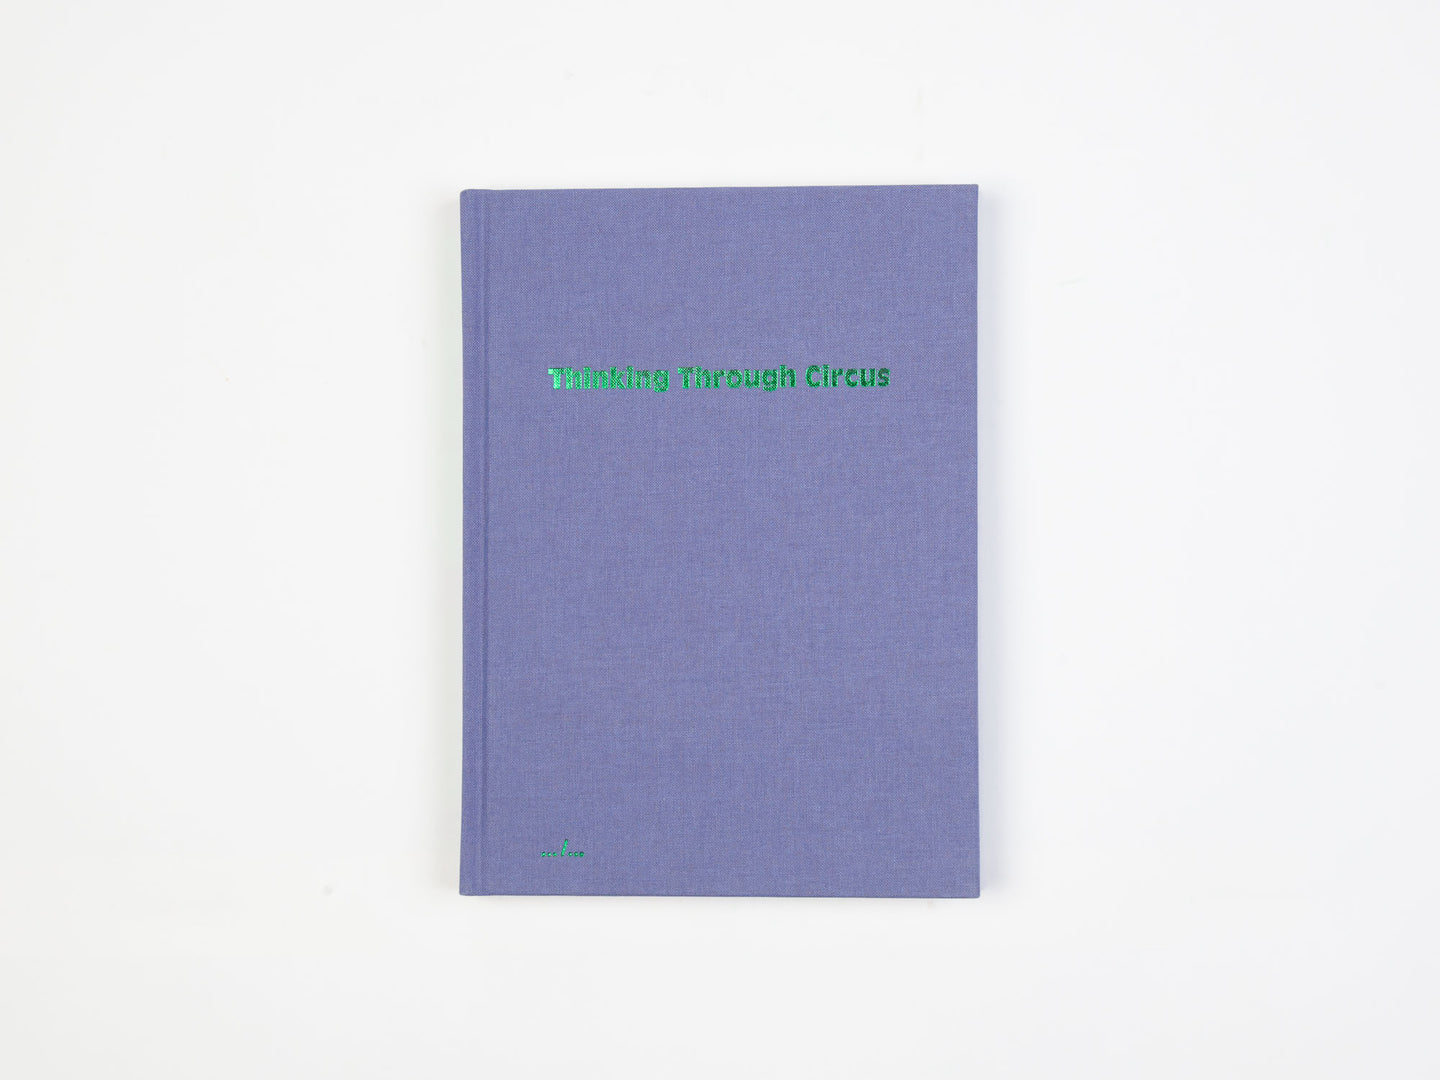 Thinking Through Circus by Bauke Lievens, Quintijn Ketels, Sebastian Kann, Vincent Focquet